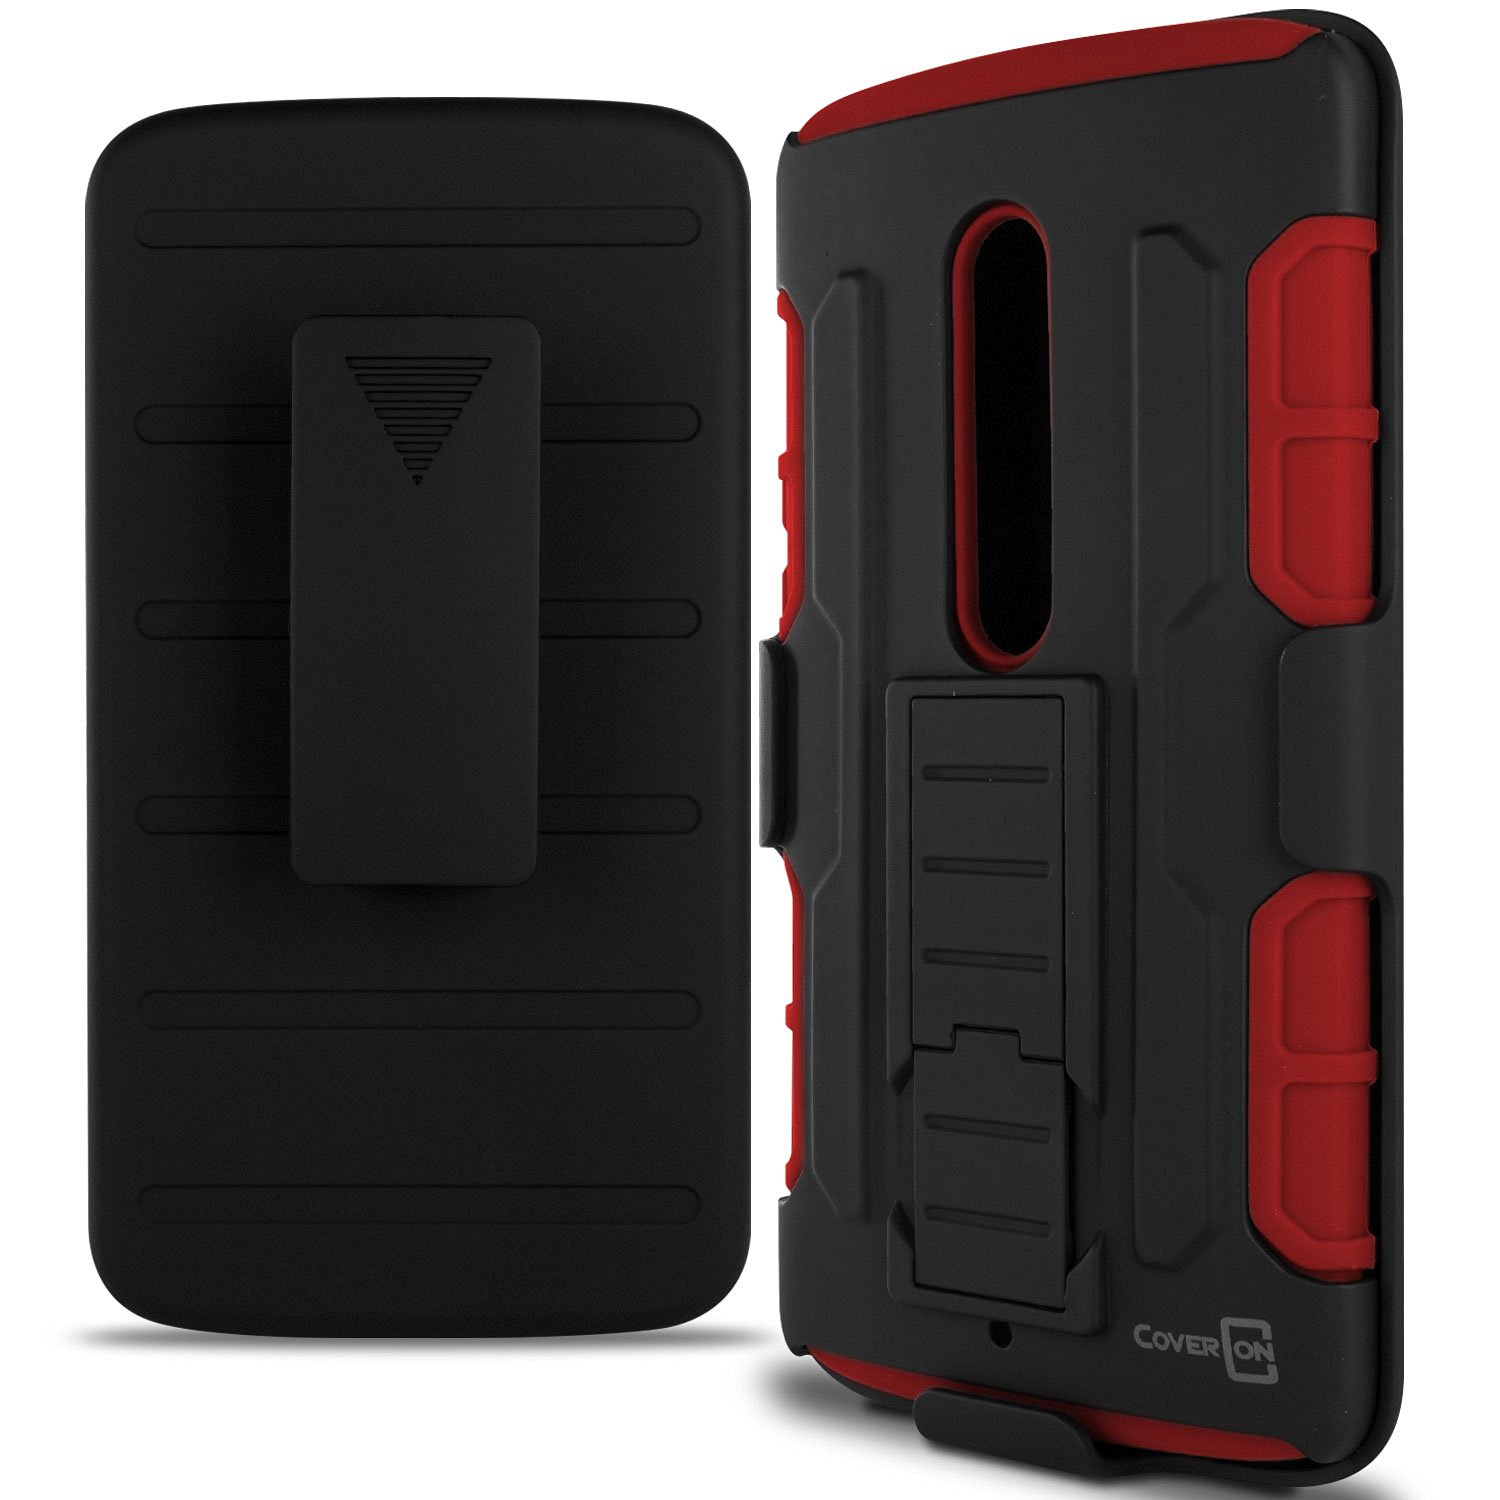 Motorola Droid Maxx 2 case, Moto X Play Case, CoverON® [Trekker Series] Holster Belt Clip Hybrid Silicone + Hard Stand Phone Case For Motorola Droid Maxx 2 / Moto X Play - Red / Black